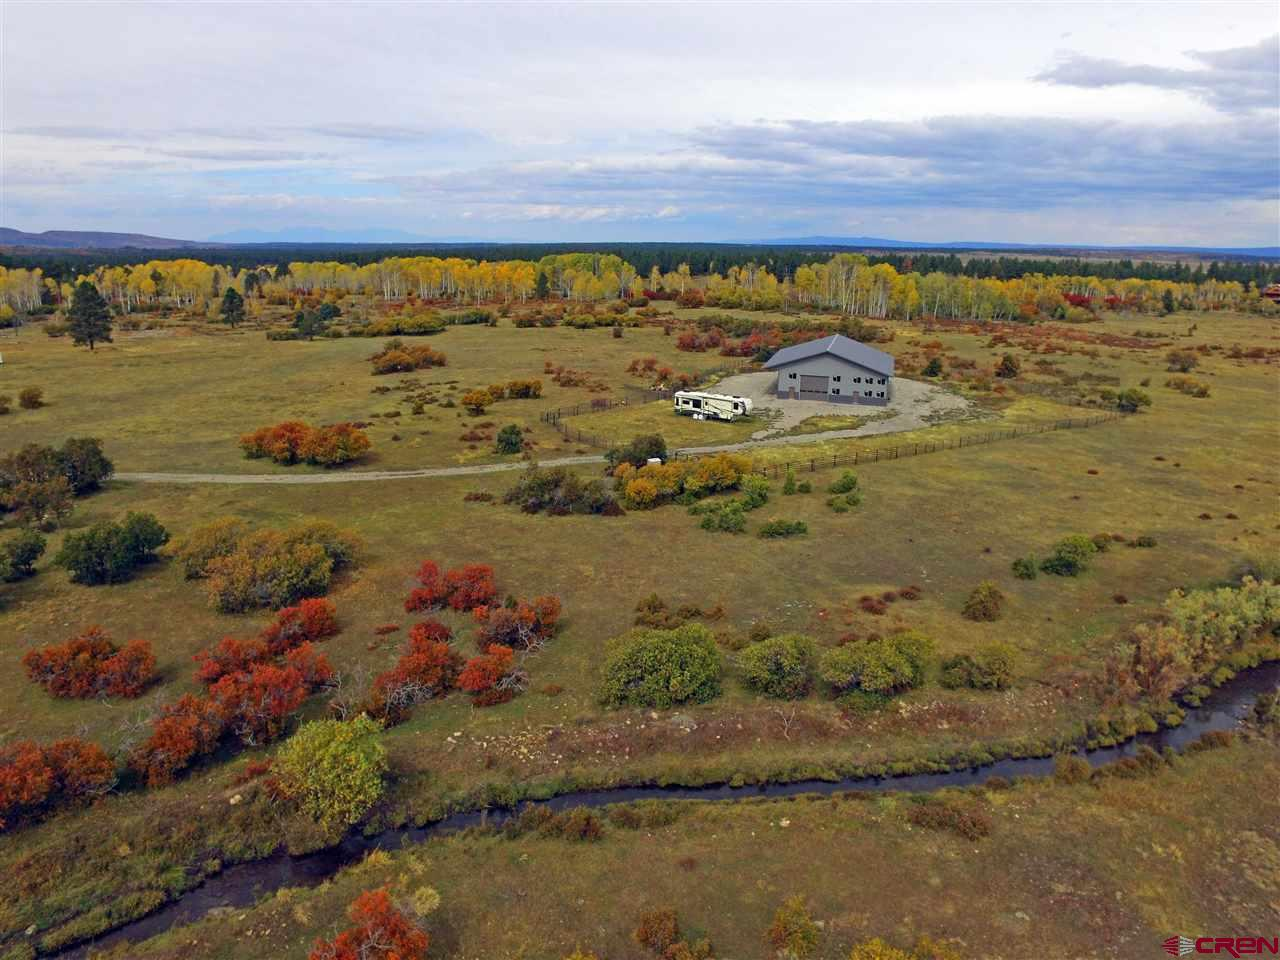 "Build a dream home on this gorgeous 35+ acres that already has a huge 4800 Sq.Ft. wood frame building with metal siding, a Conex Storage Box and Corral Panels included.  It is one of the only lots that joins it's designated Open Space within the Subdivision. This could be a Mountain Retreat or setup permanent residence at the base of the Lone Cone. <a href=http://www.listingsmagic.com/159191 target=""_blank""><b>Click here for virtual tour</b></a>"